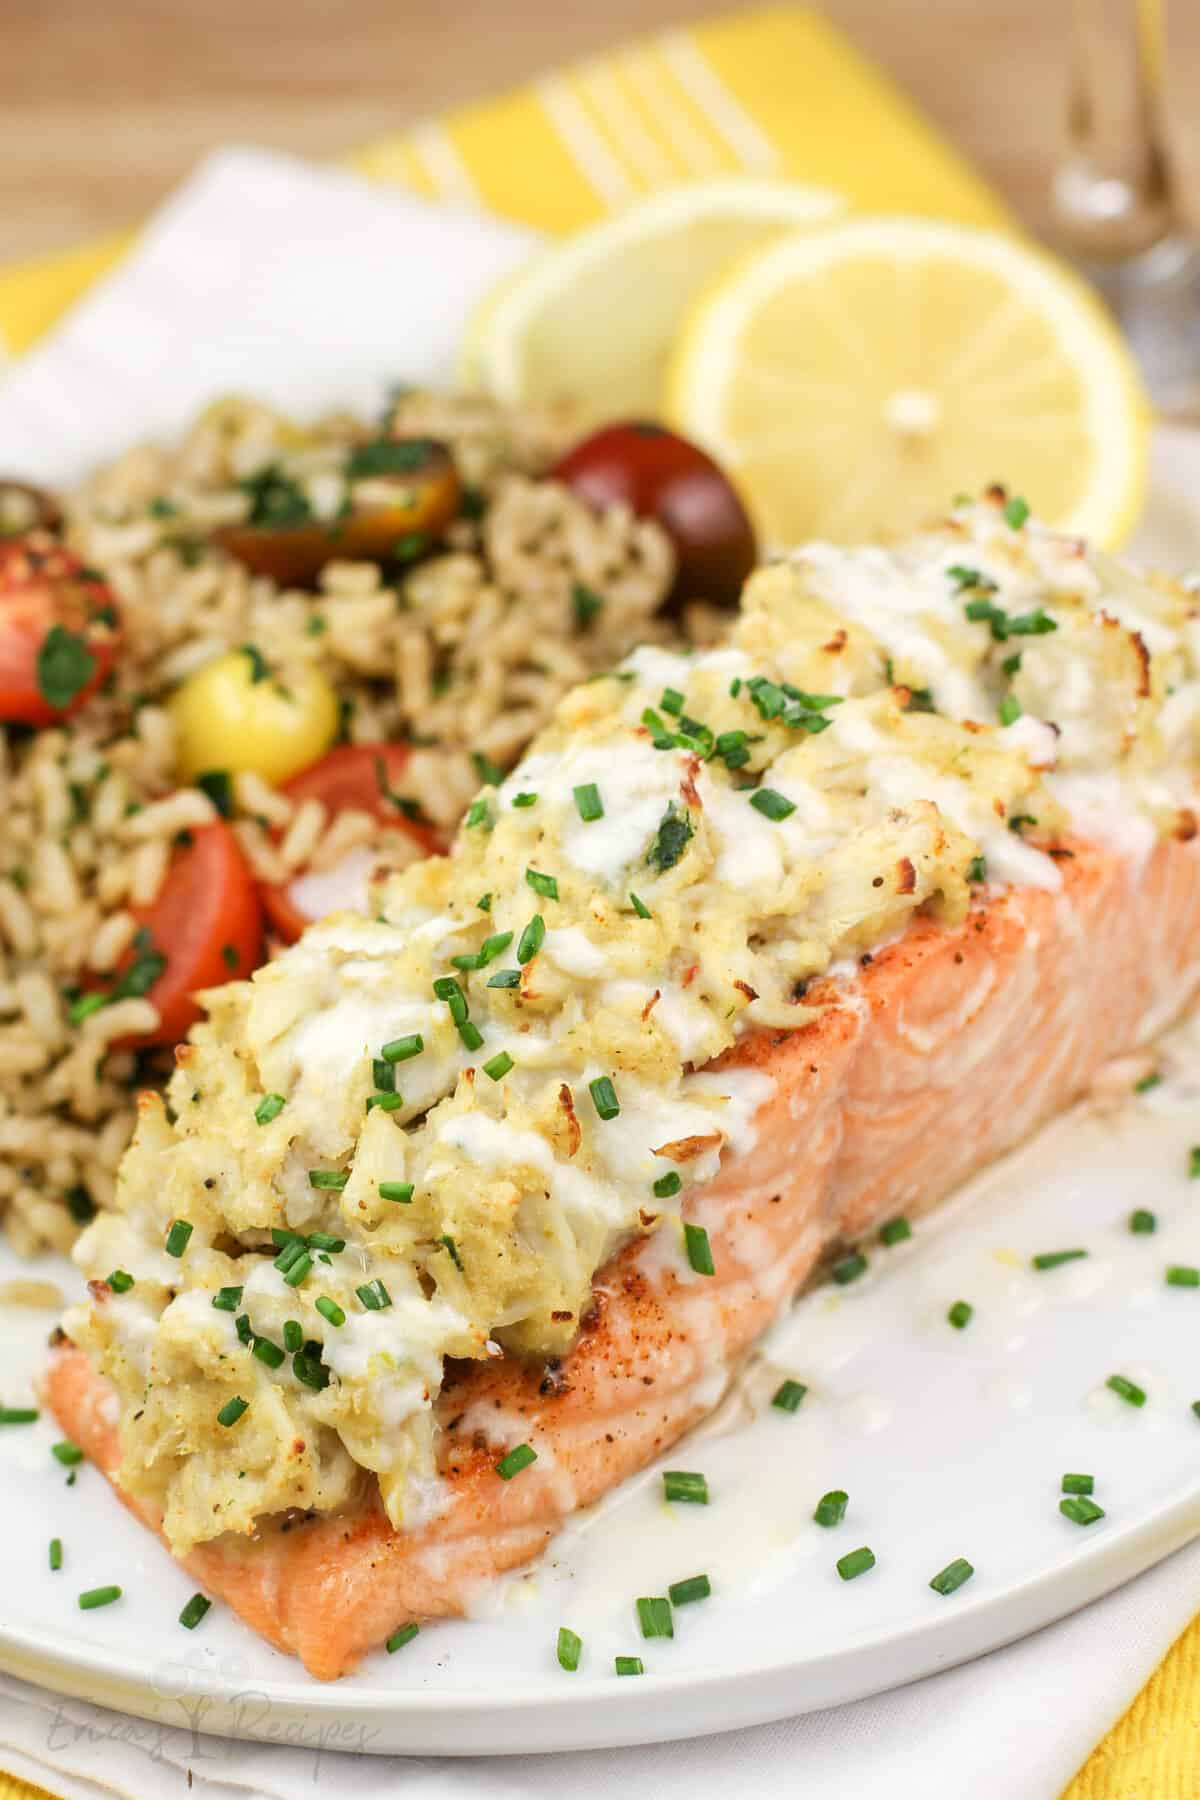 plated portion or salmon on white late with lemon and brown rice